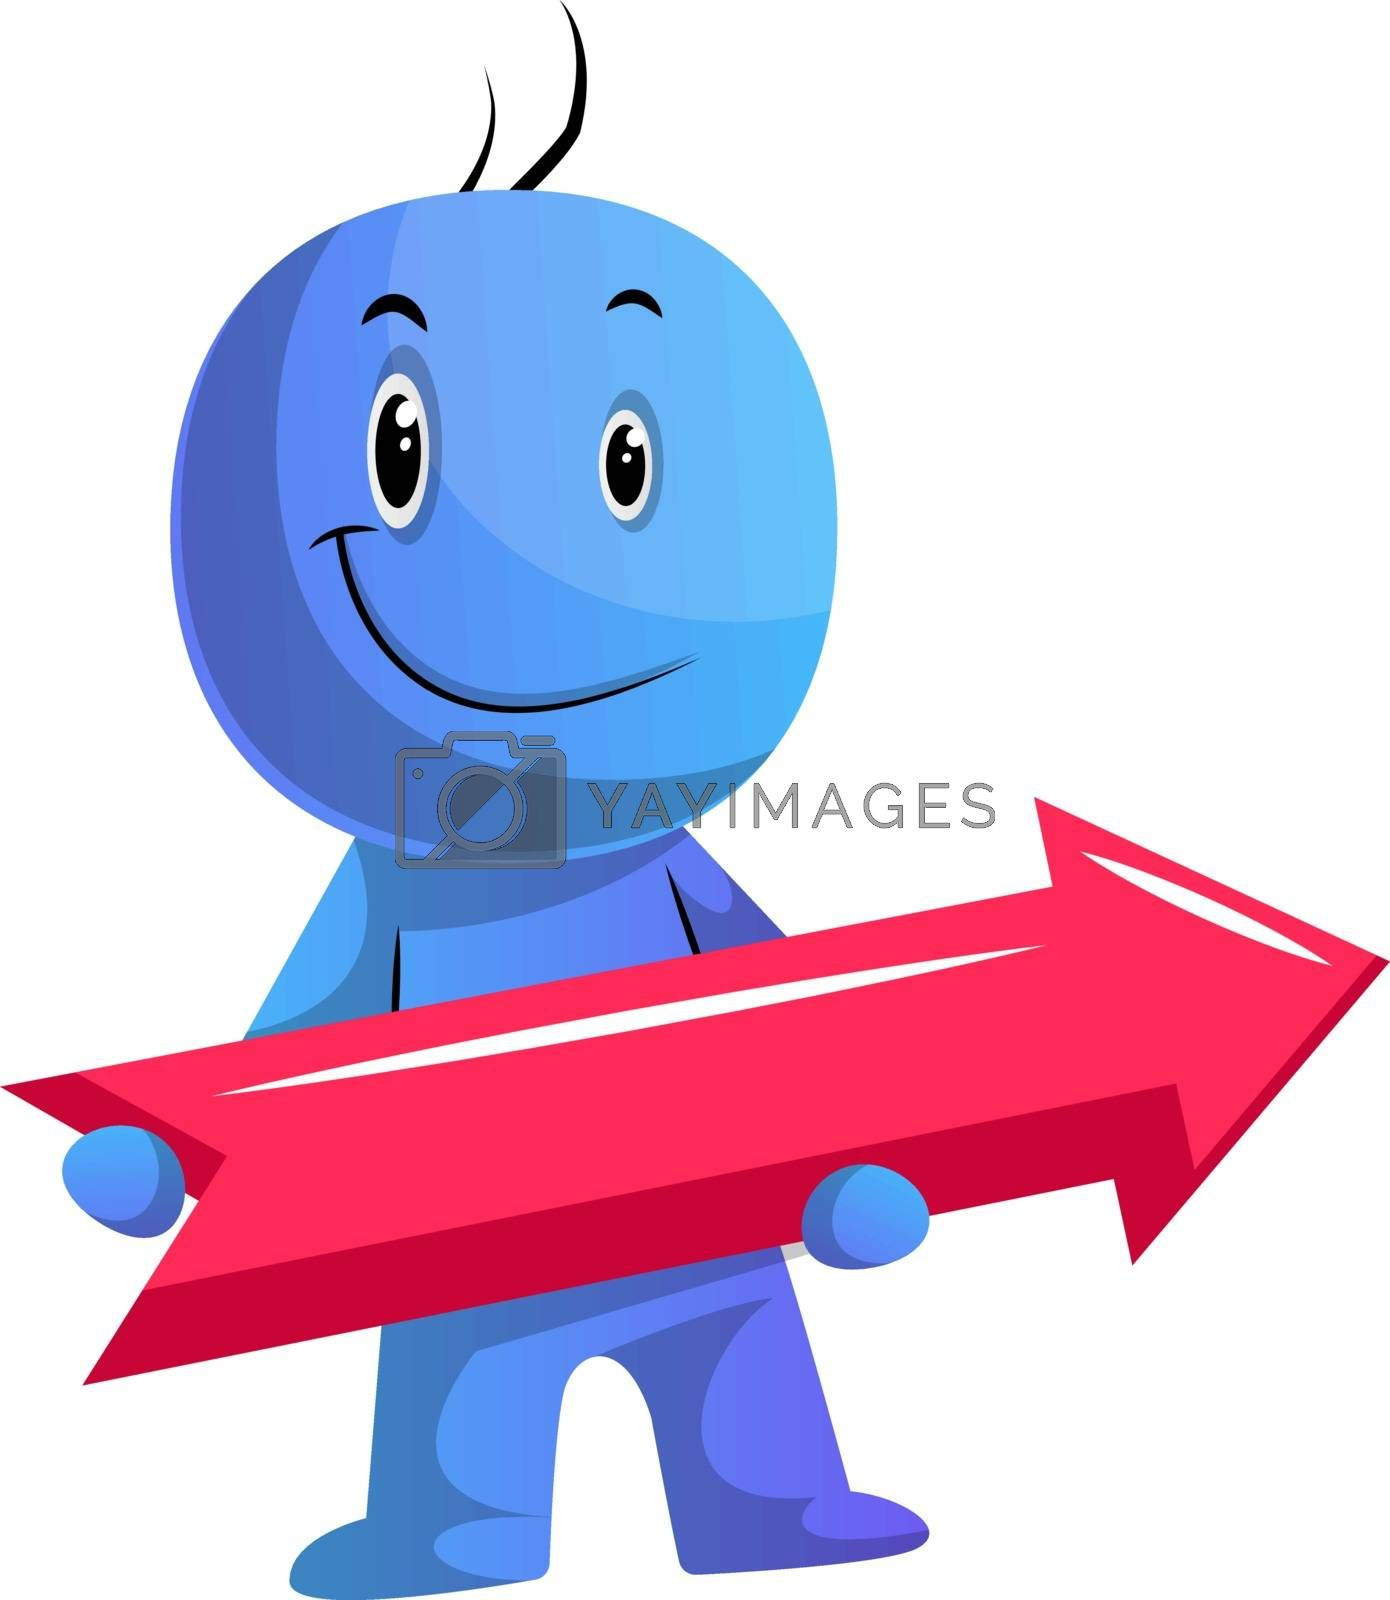 Royalty free image of Blue cartoon caracter with red direction sign illustration vecto by Morphart